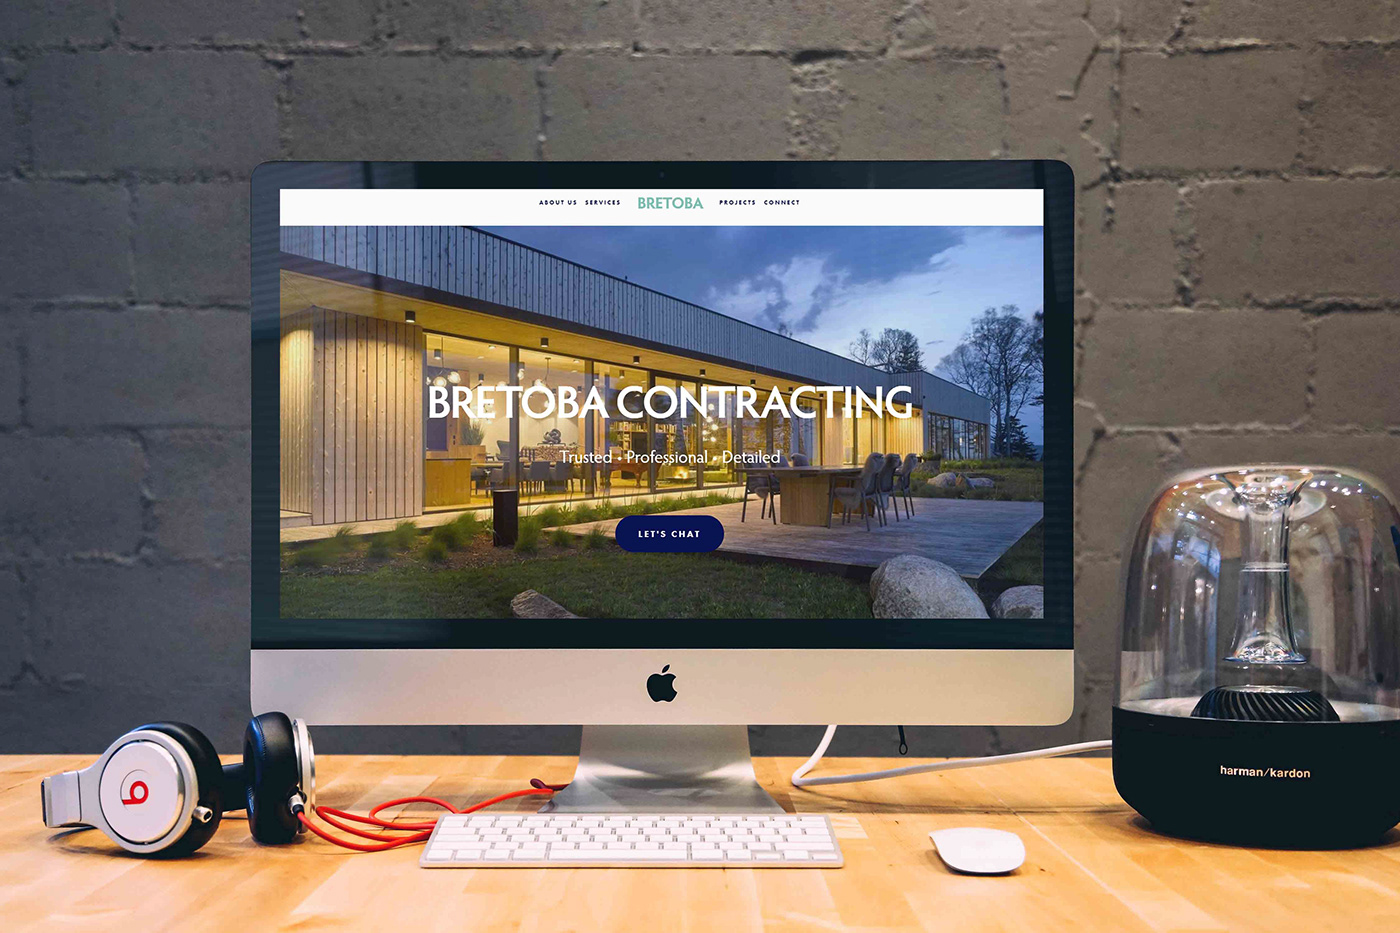 contracting Home Builder east coast home design renovation house Carpentry